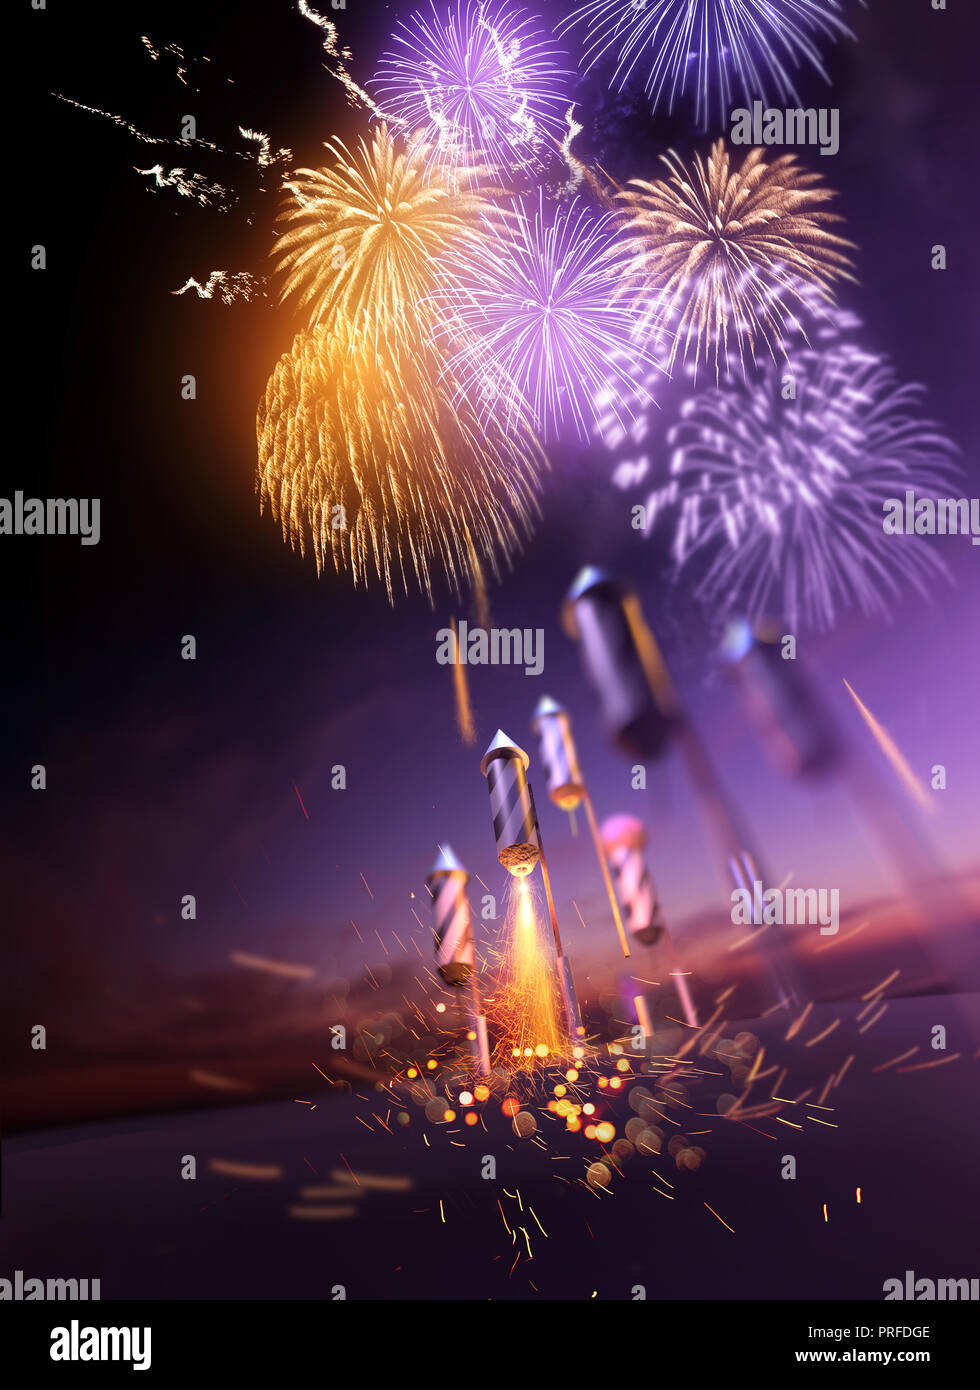 Firework rockets flying into the air and bursting into gold orange and purple breaks lighting up the night sky. Celebration display background. 3D ill Stock Photo